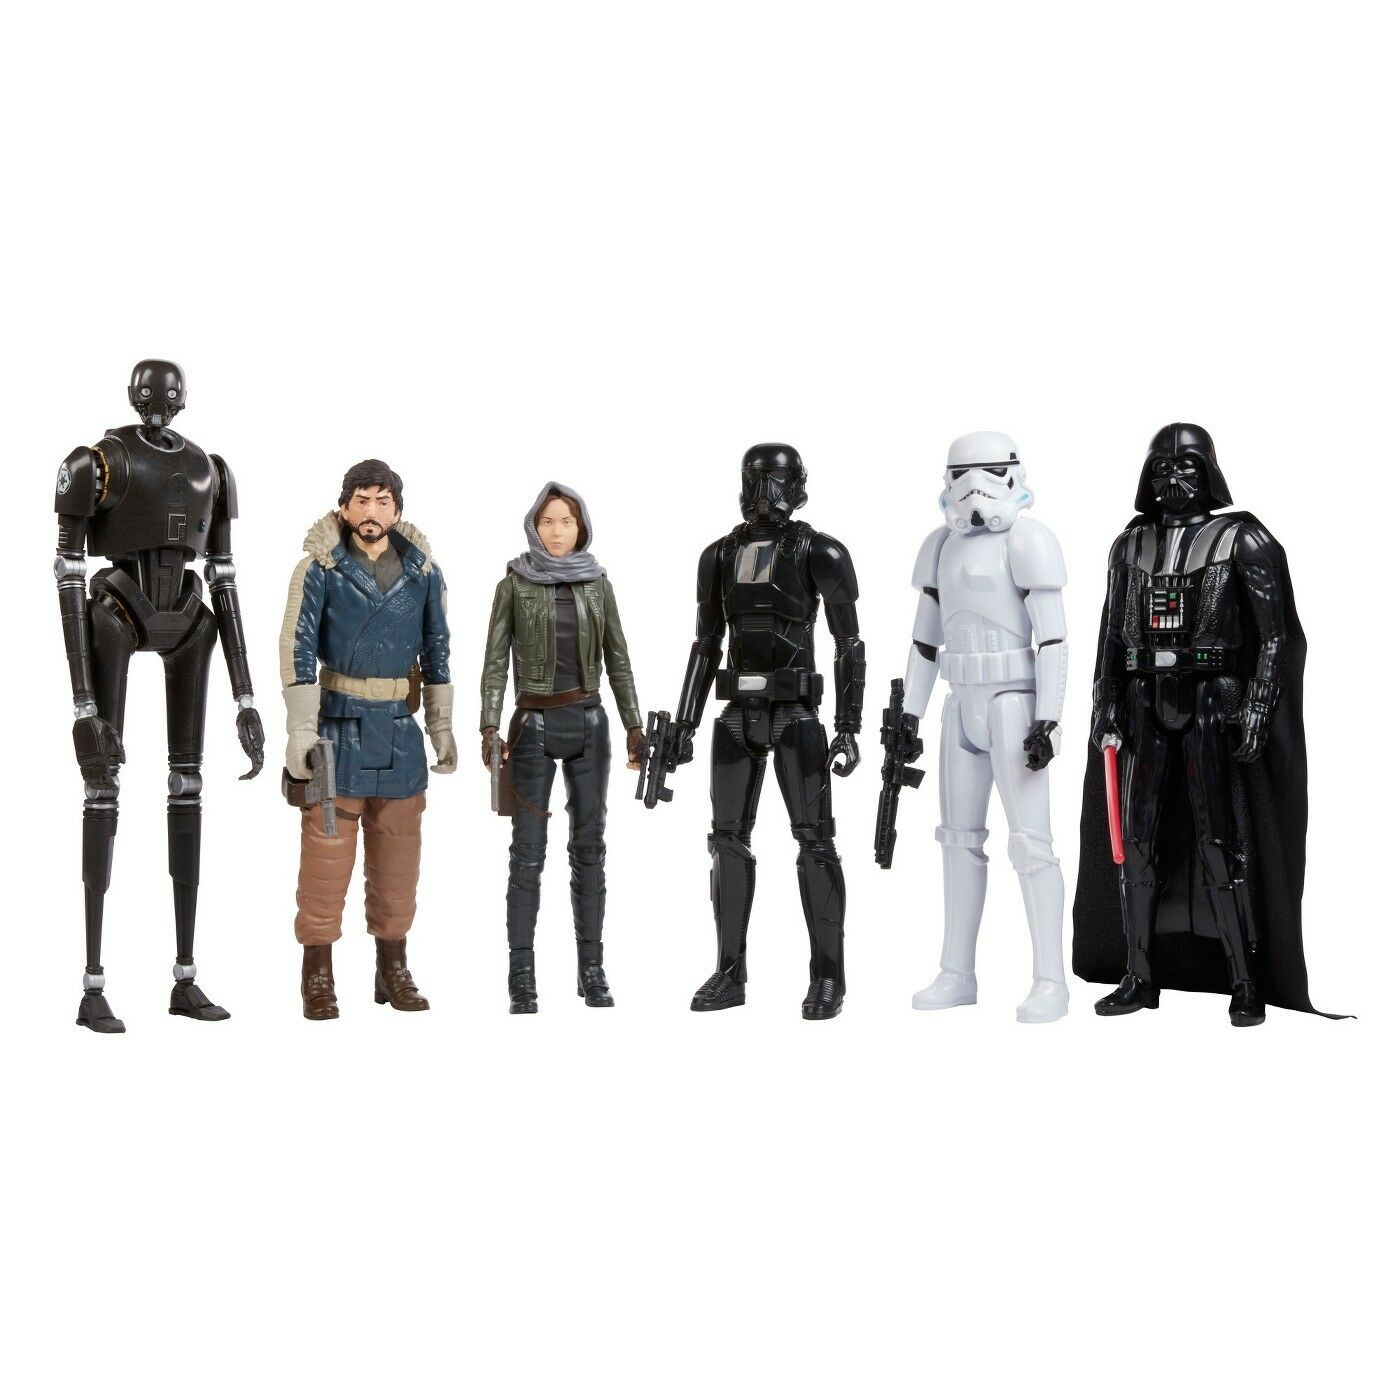 Star wars rogue eins held serie actionfiguren - eine exklusive